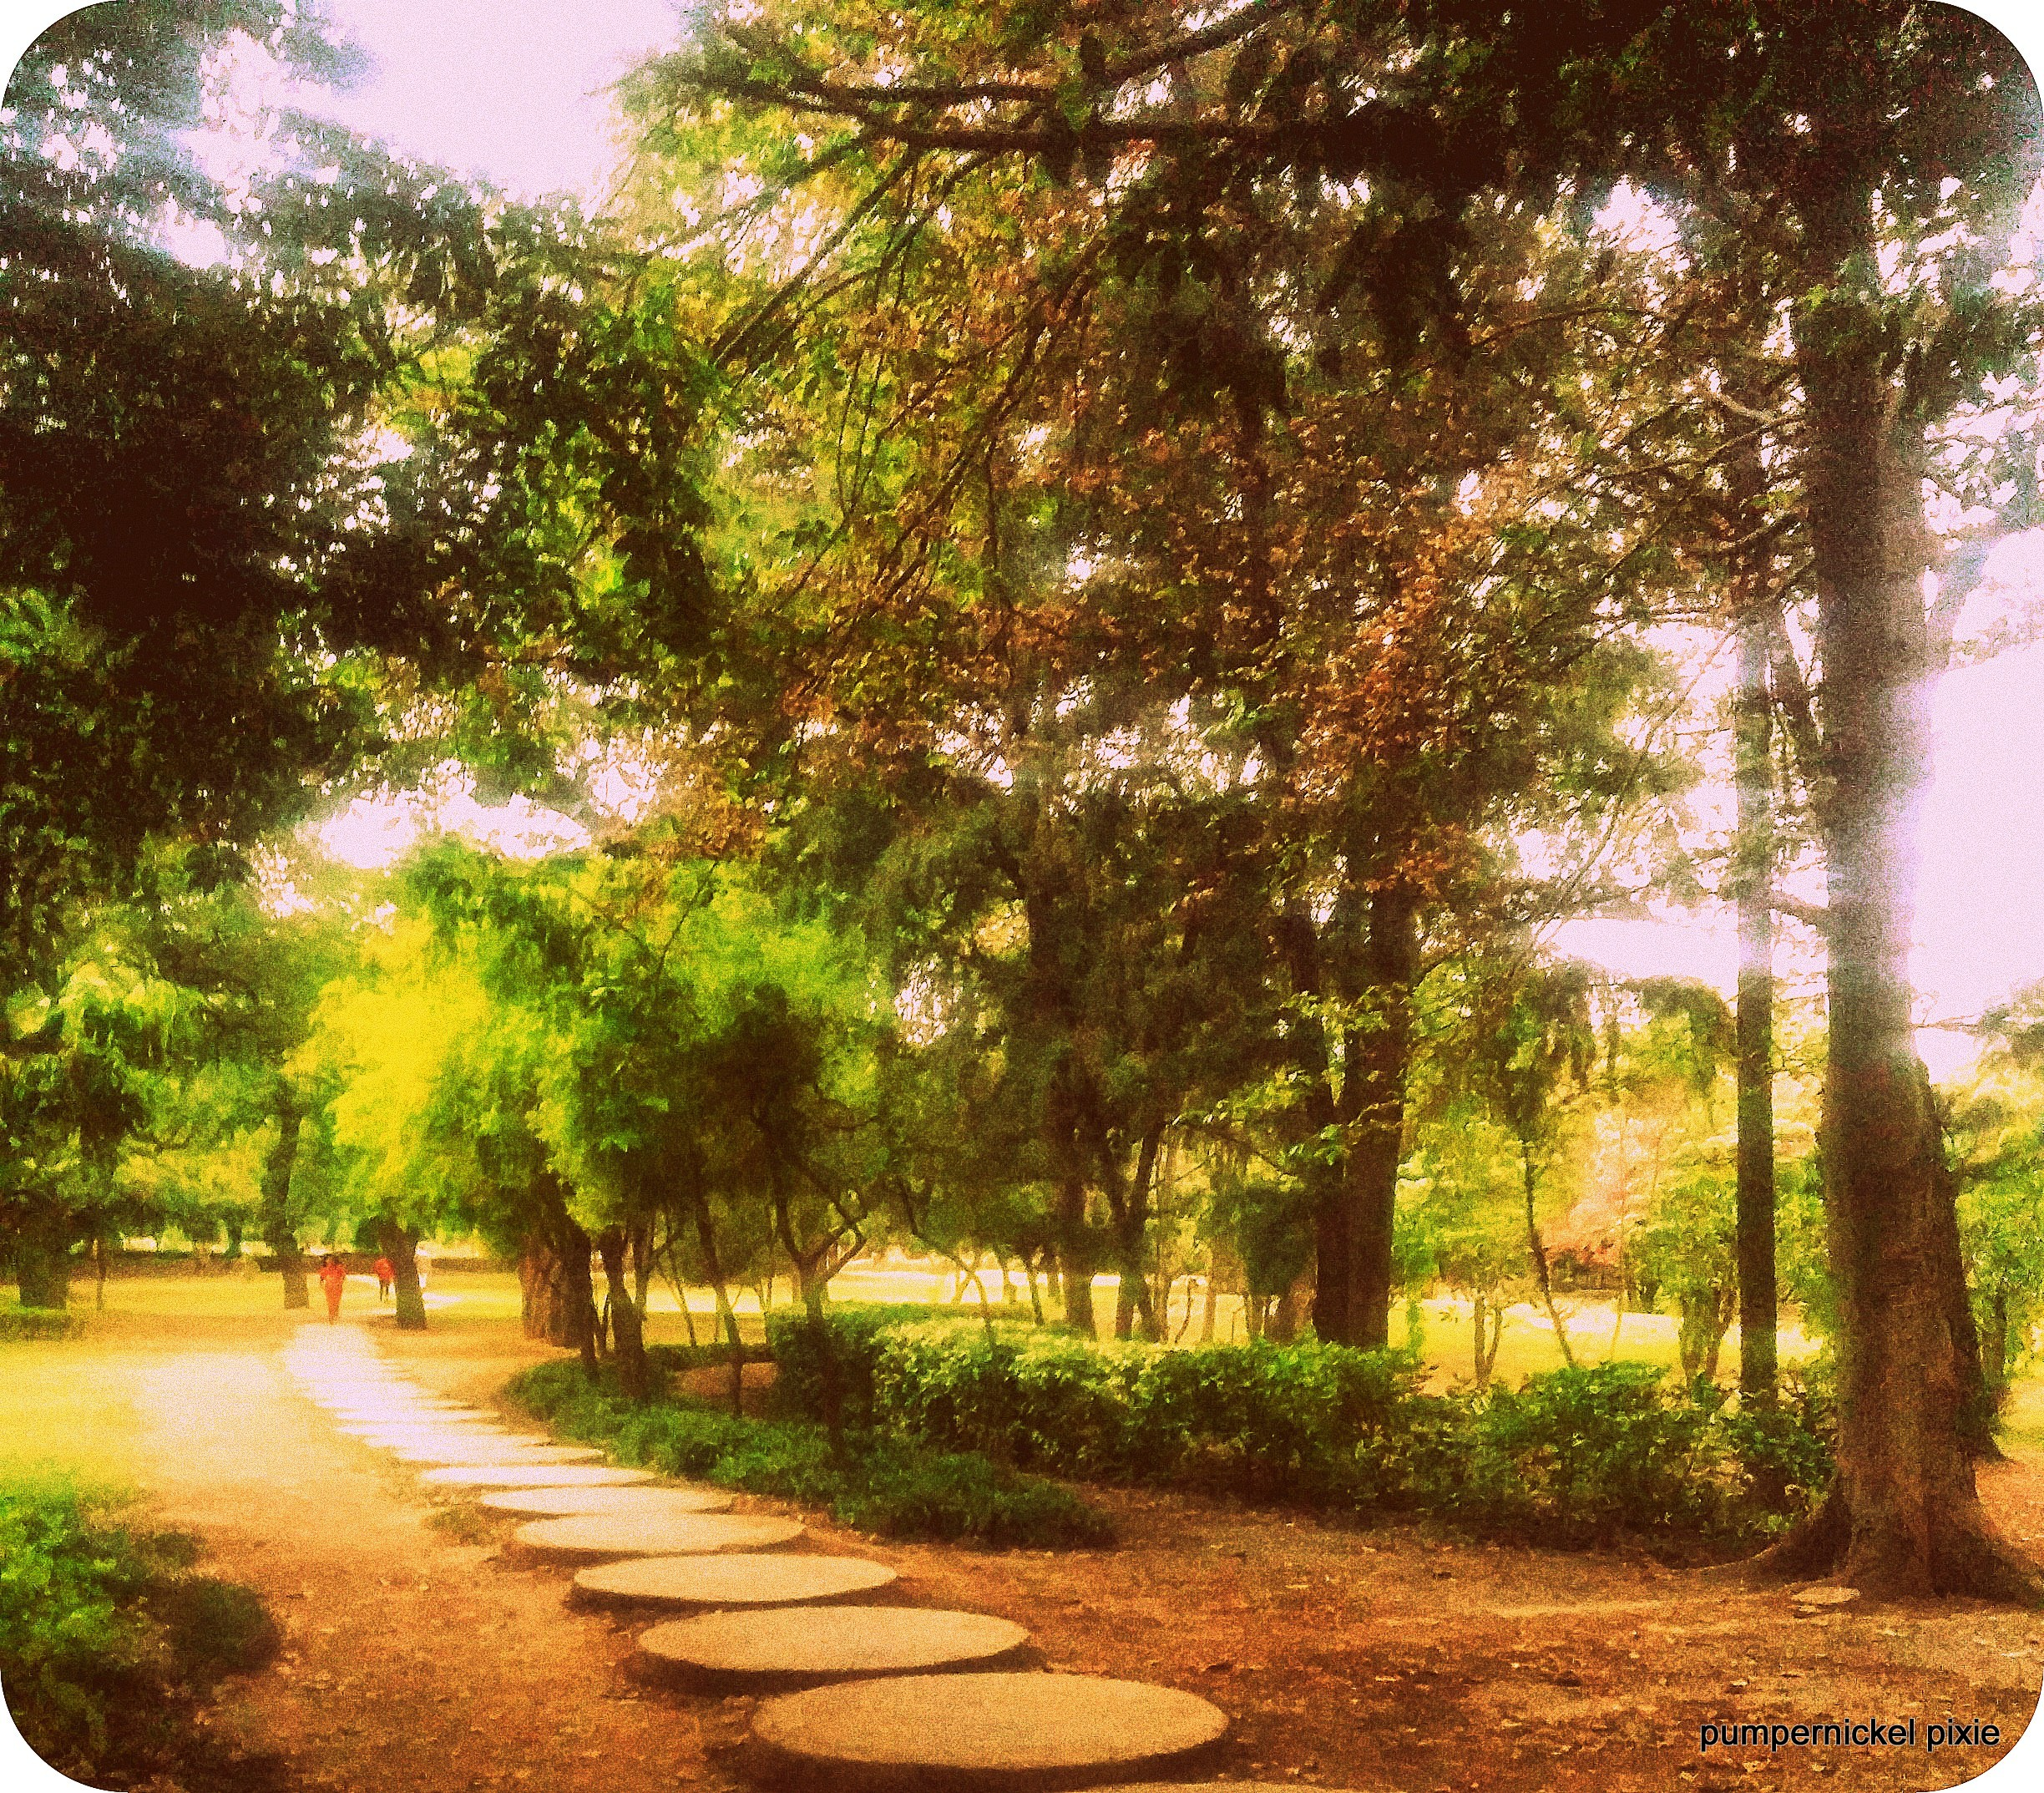 morning walk green trees garden park photography on pumpernickel pixie